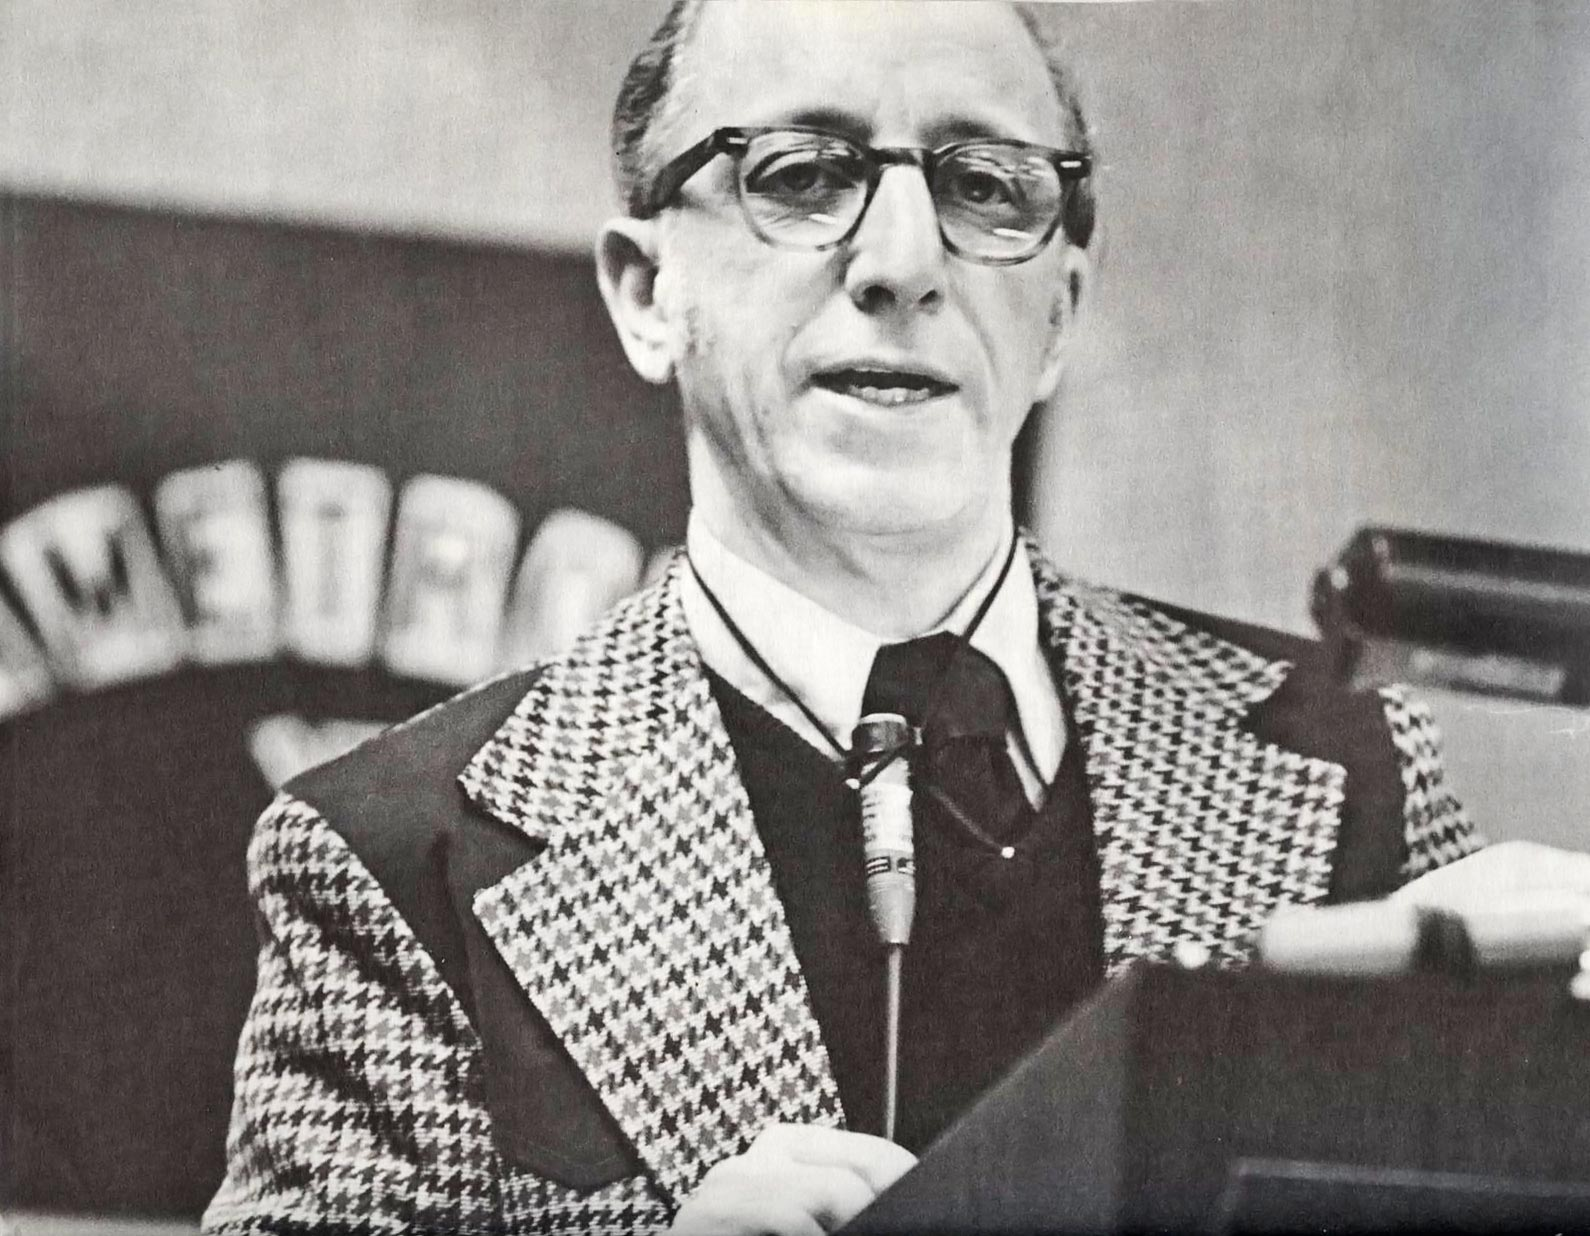 Ralph Baer, creator of the first home video game Odyssey